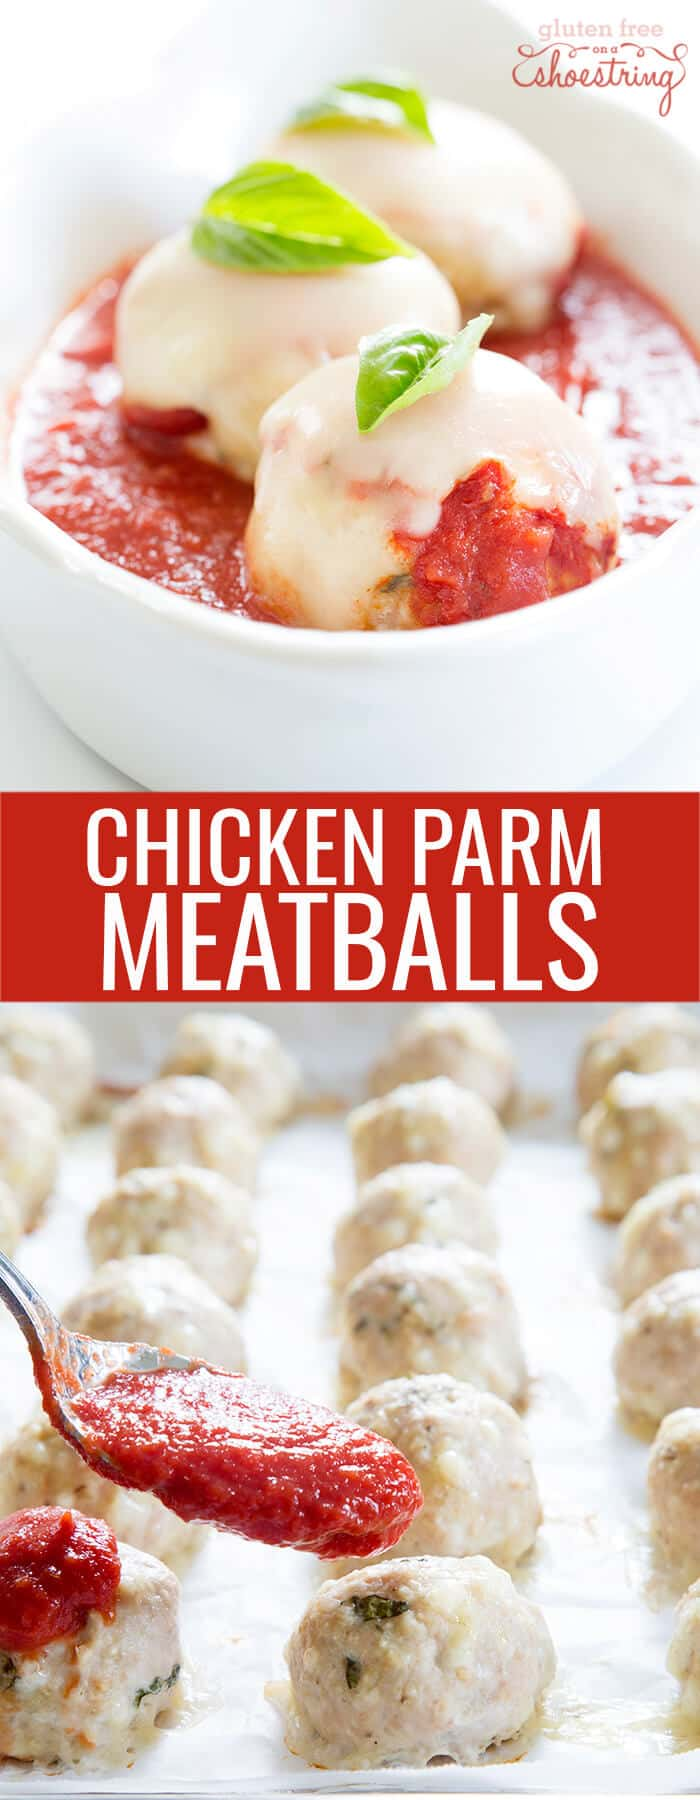 A white dish with chicken parm meatballs and a tray of chicken parm meatballs below